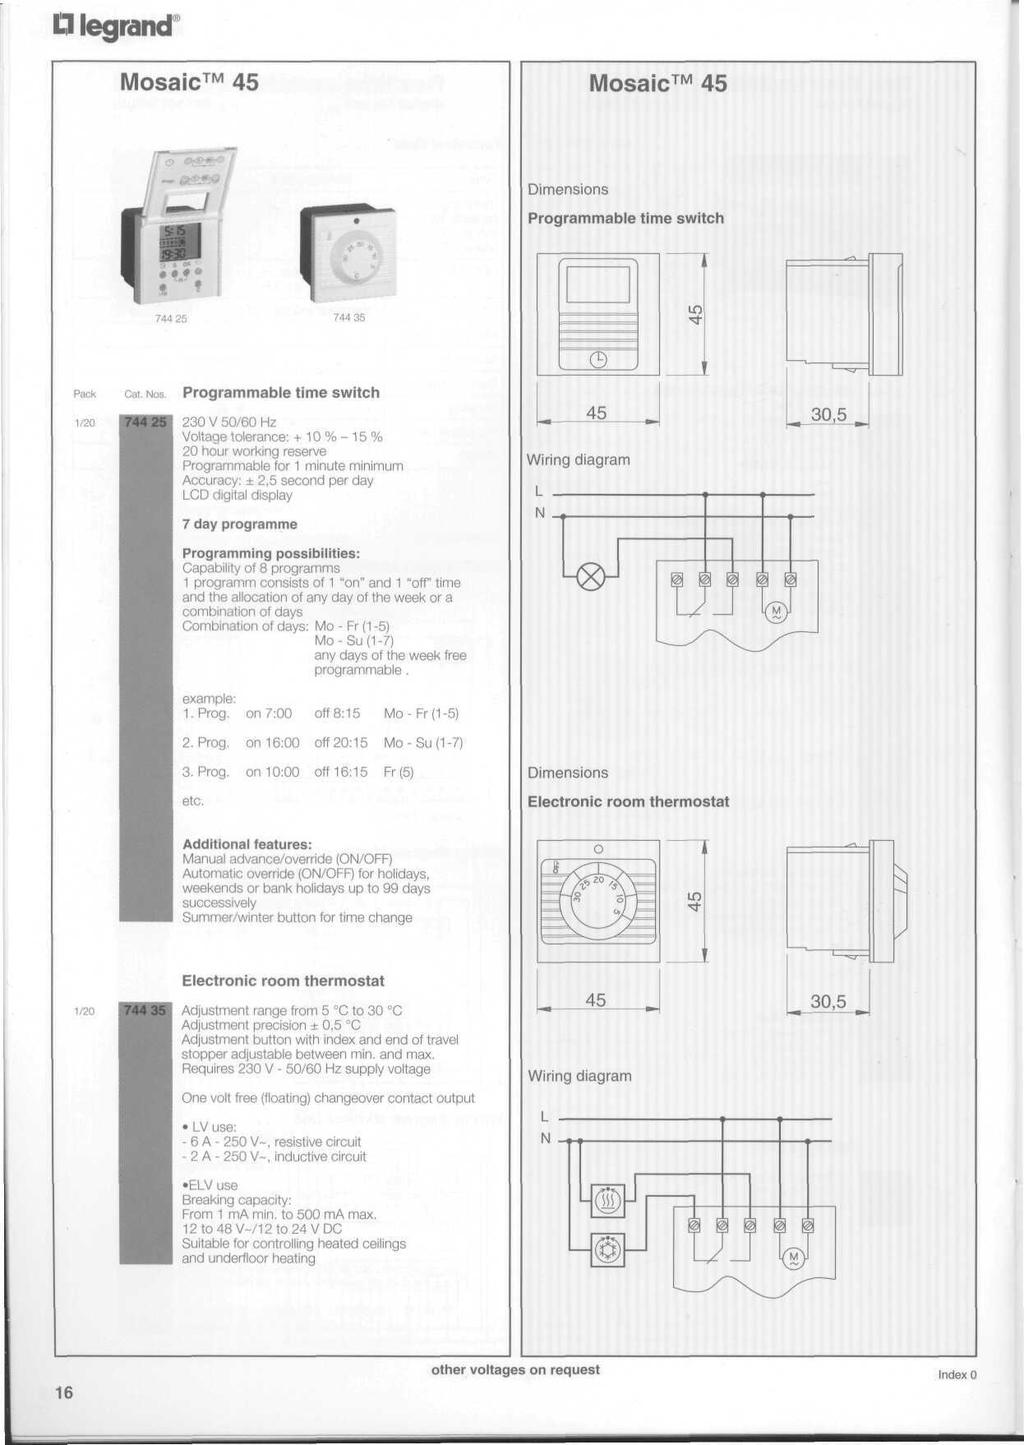 ж. ж,?* A complete range for any application - PDF Free Download on internet of things diagrams, smart car diagrams, motor diagrams, honda motorcycle repair diagrams, pinout diagrams, engine diagrams, transformer diagrams, battery diagrams, lighting diagrams, switch diagrams, gmc fuse box diagrams, series and parallel circuits diagrams, sincgars radio configurations diagrams, hvac diagrams, friendship bracelet diagrams, led circuit diagrams, electrical diagrams, electronic circuit diagrams, troubleshooting diagrams,